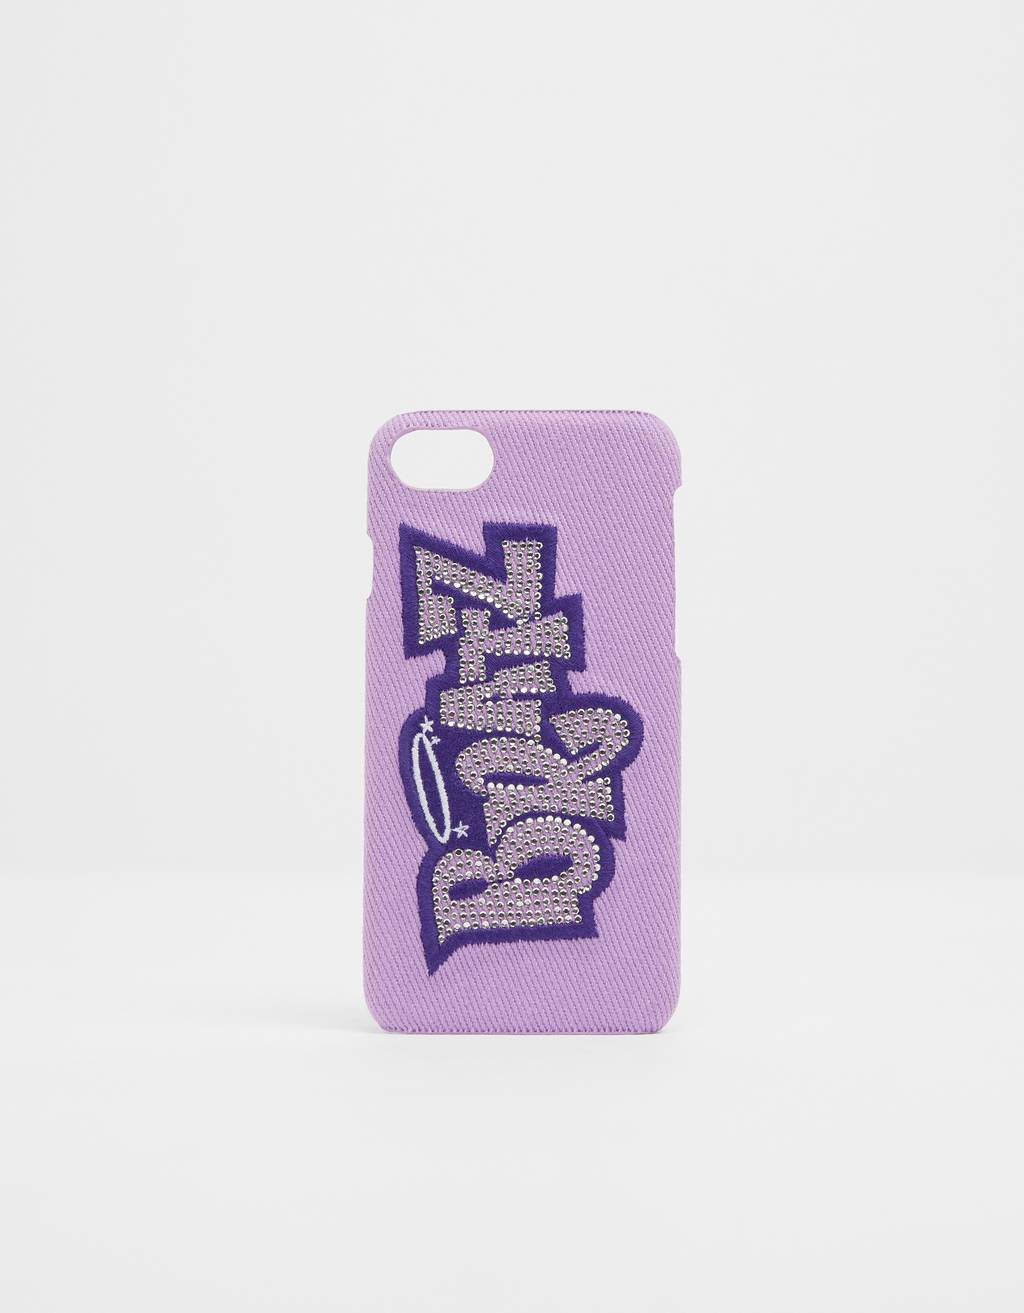 Bratz iPhone 6 / 7 / 8 case